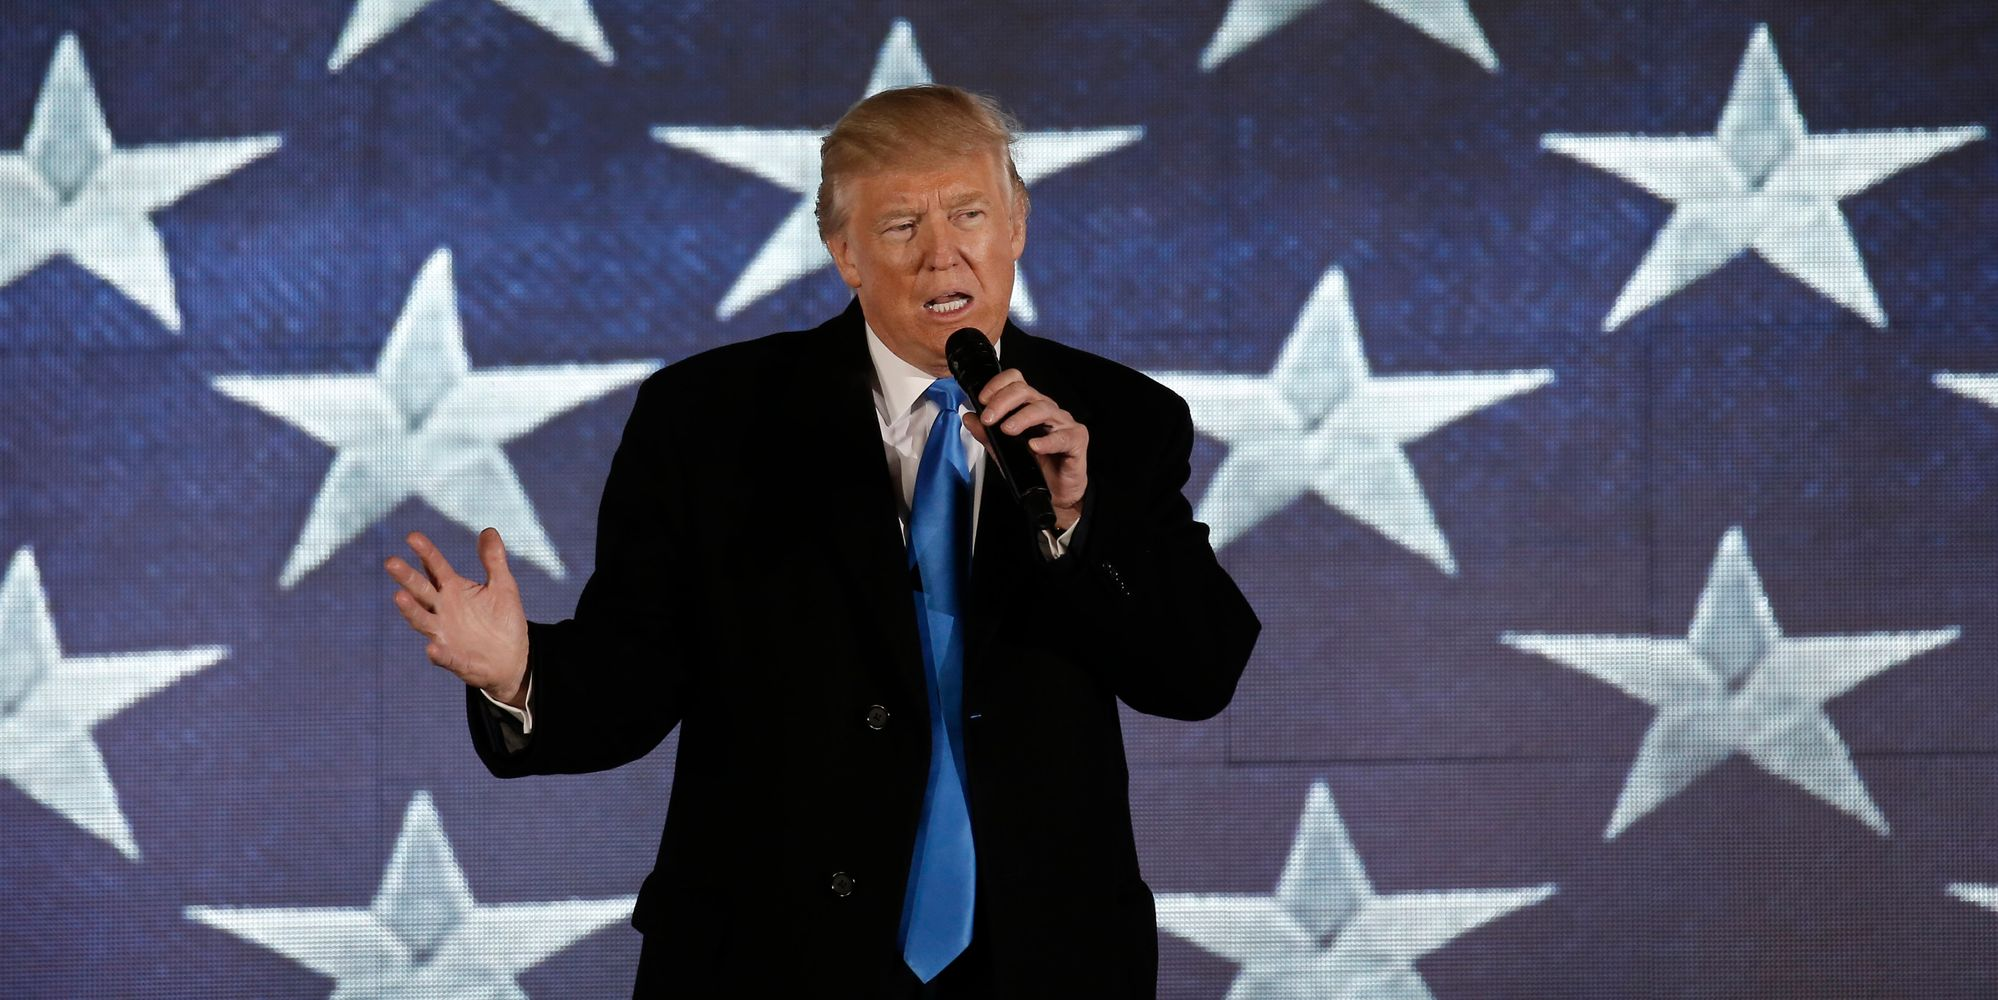 Read Live Updates From Donald Trump's Presidential Inauguration